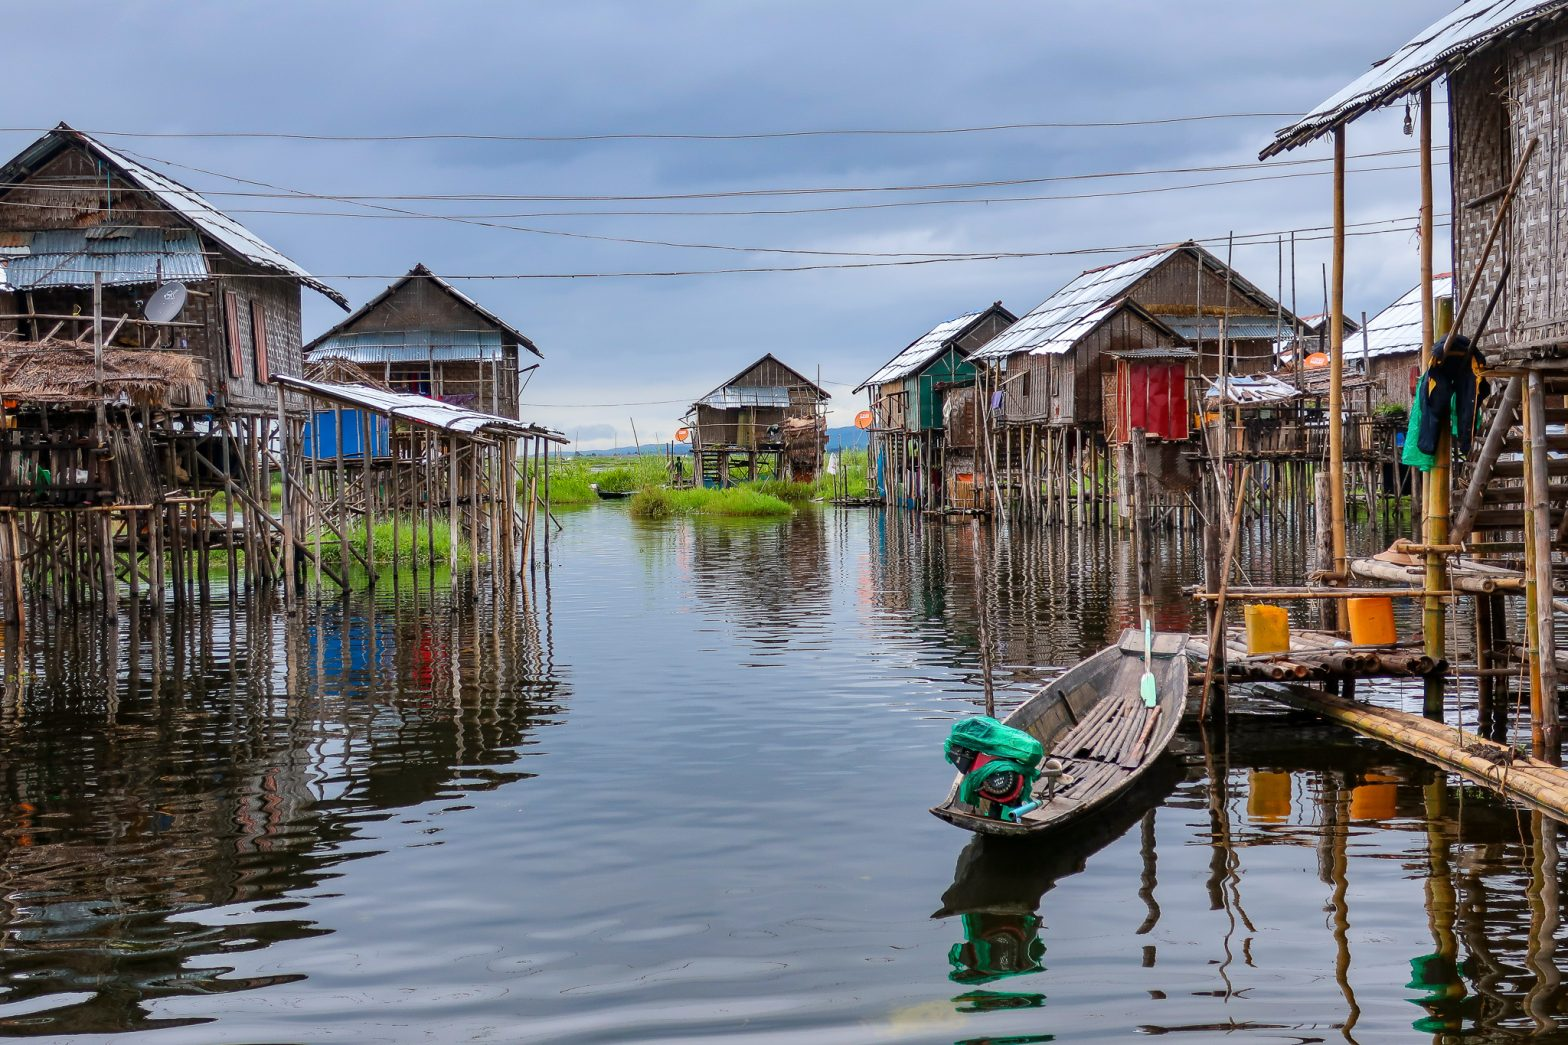 TWO DAYS AT THE LAKE INLE